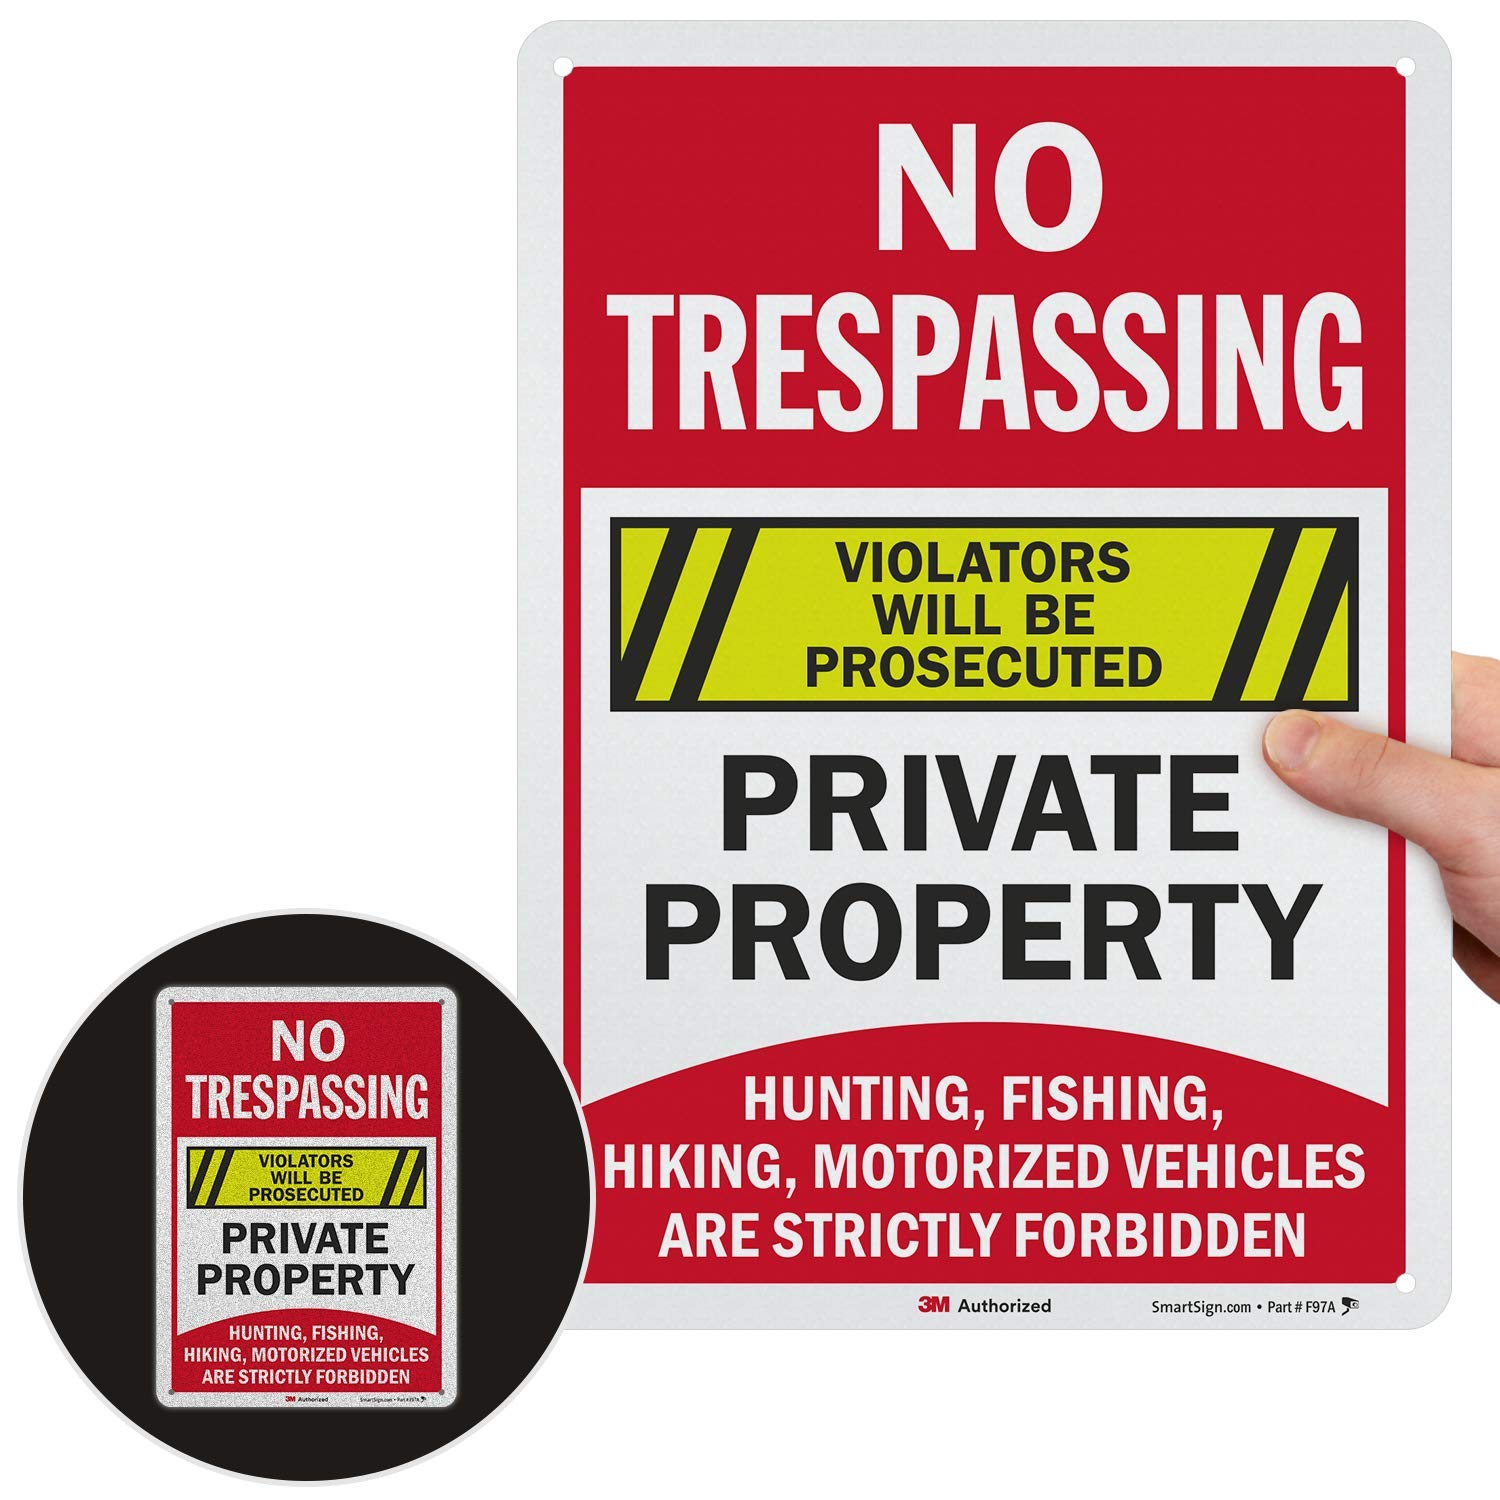 """SmartSign """"No Trespassing Private Property - Hunting, Fishing, Hiking, Motorized Vehicles are Forbidden"""" Sign 